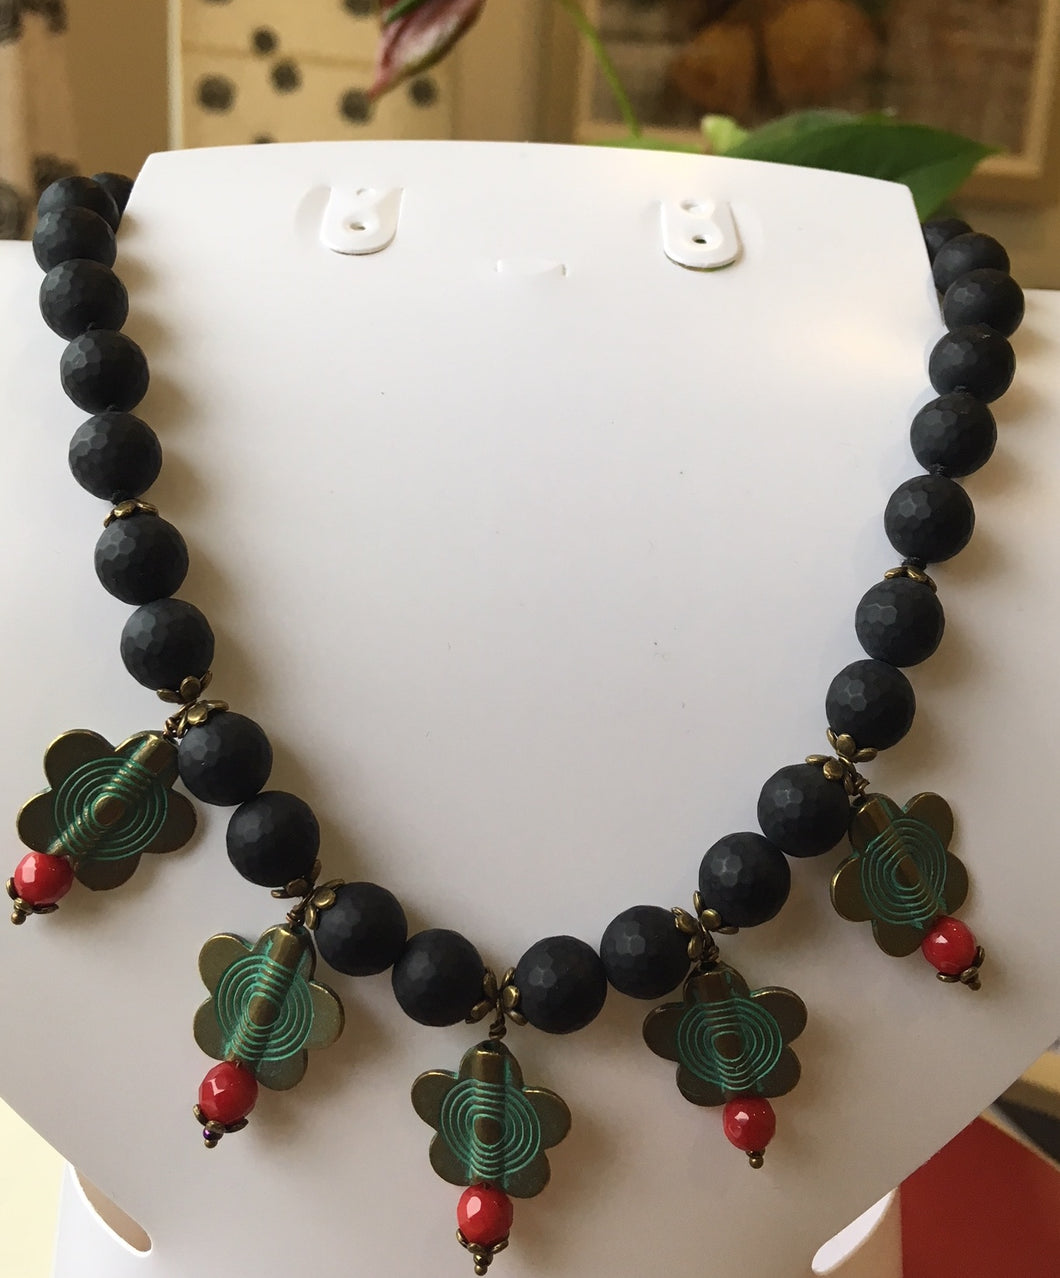 Black agate and brass charms necklace.